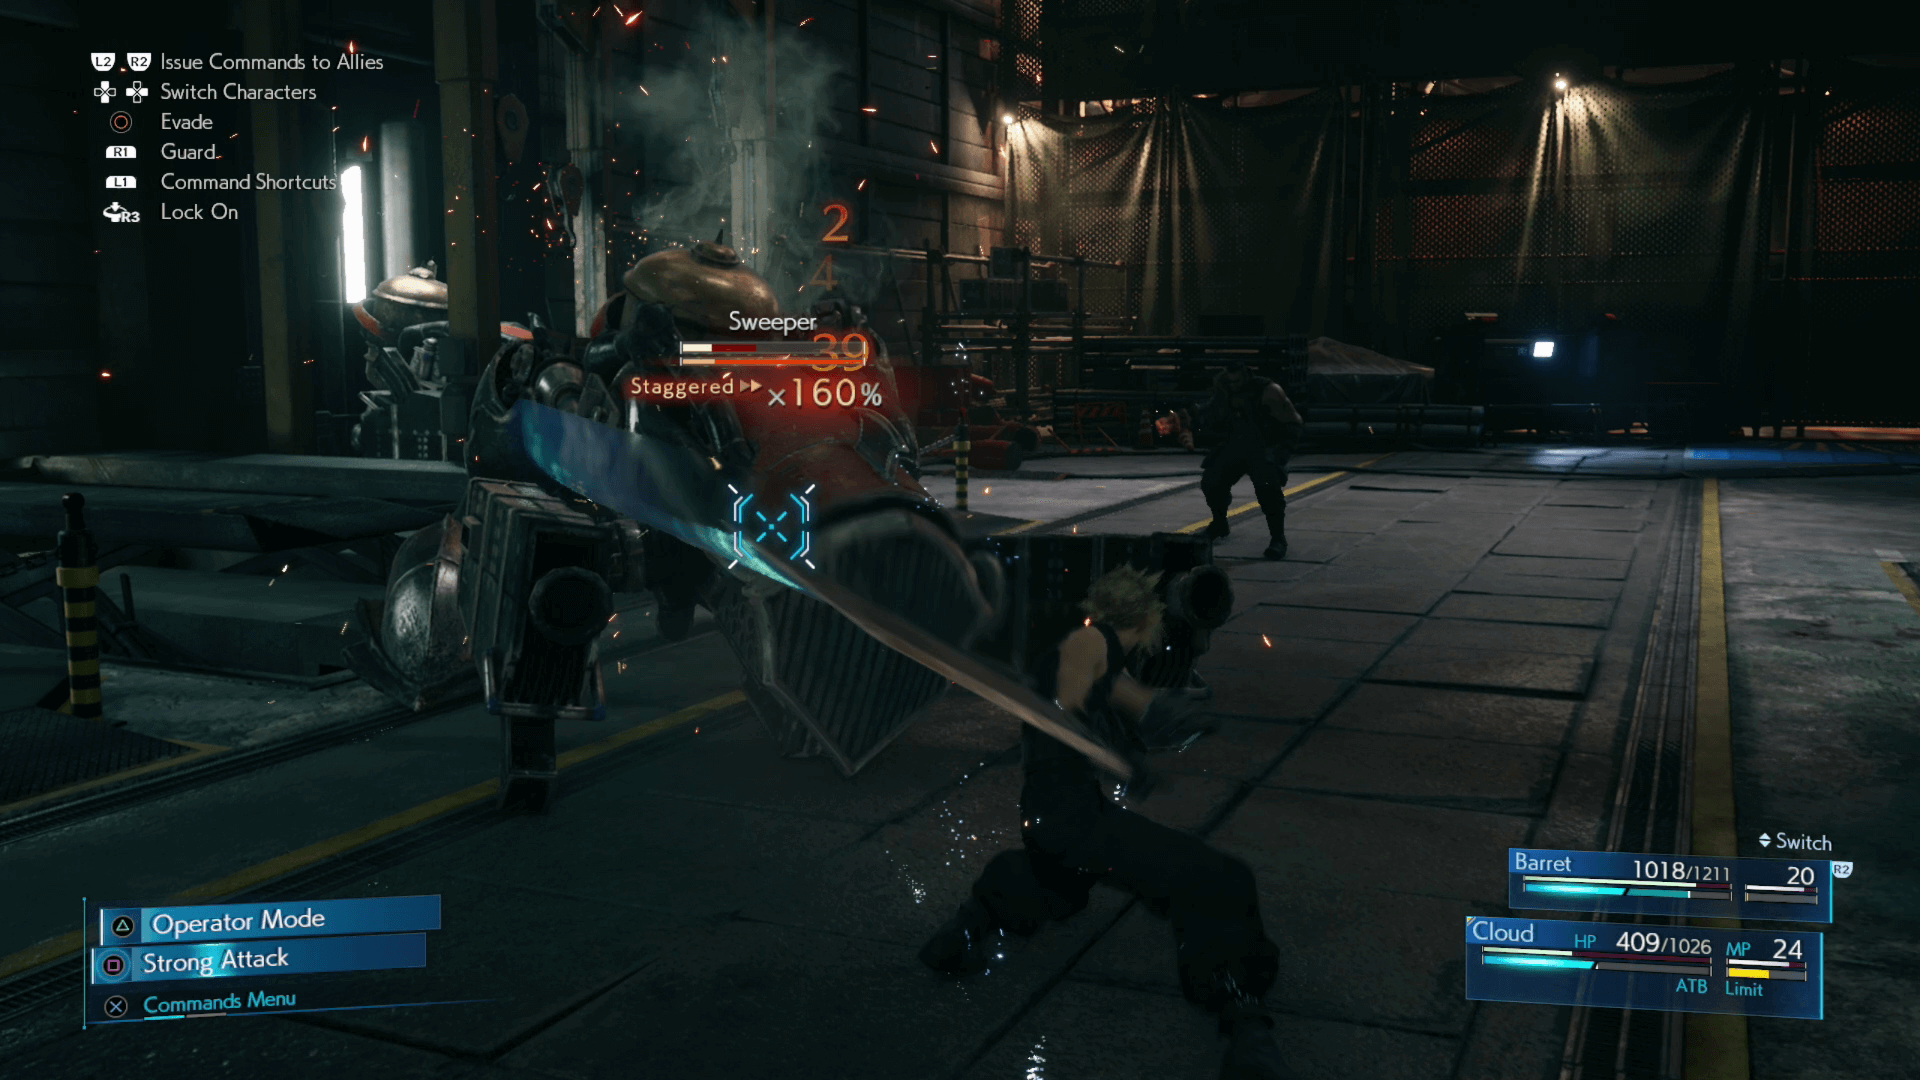 How to stagger enemies in Final Fantasy 7 Remake